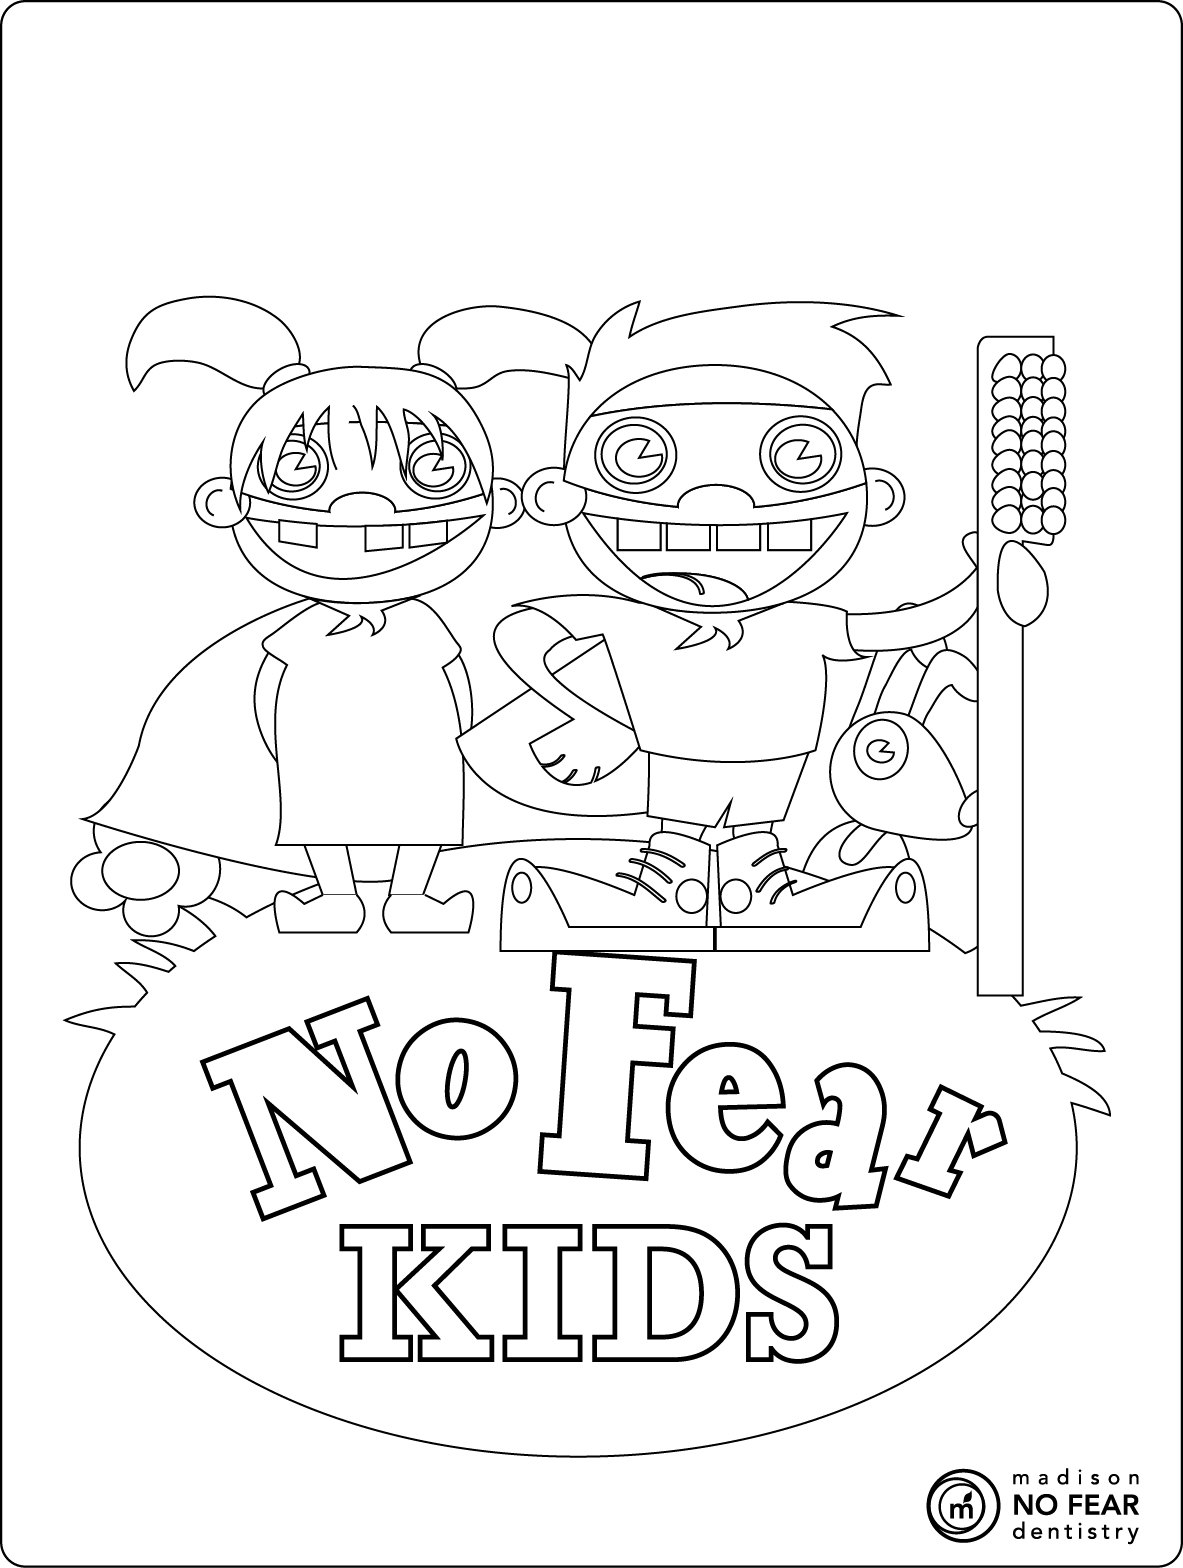 No Fear Kids Zone Download Of The Most Awesome Dental Coloring Sheets Coloring Pages & Coloring Gallery